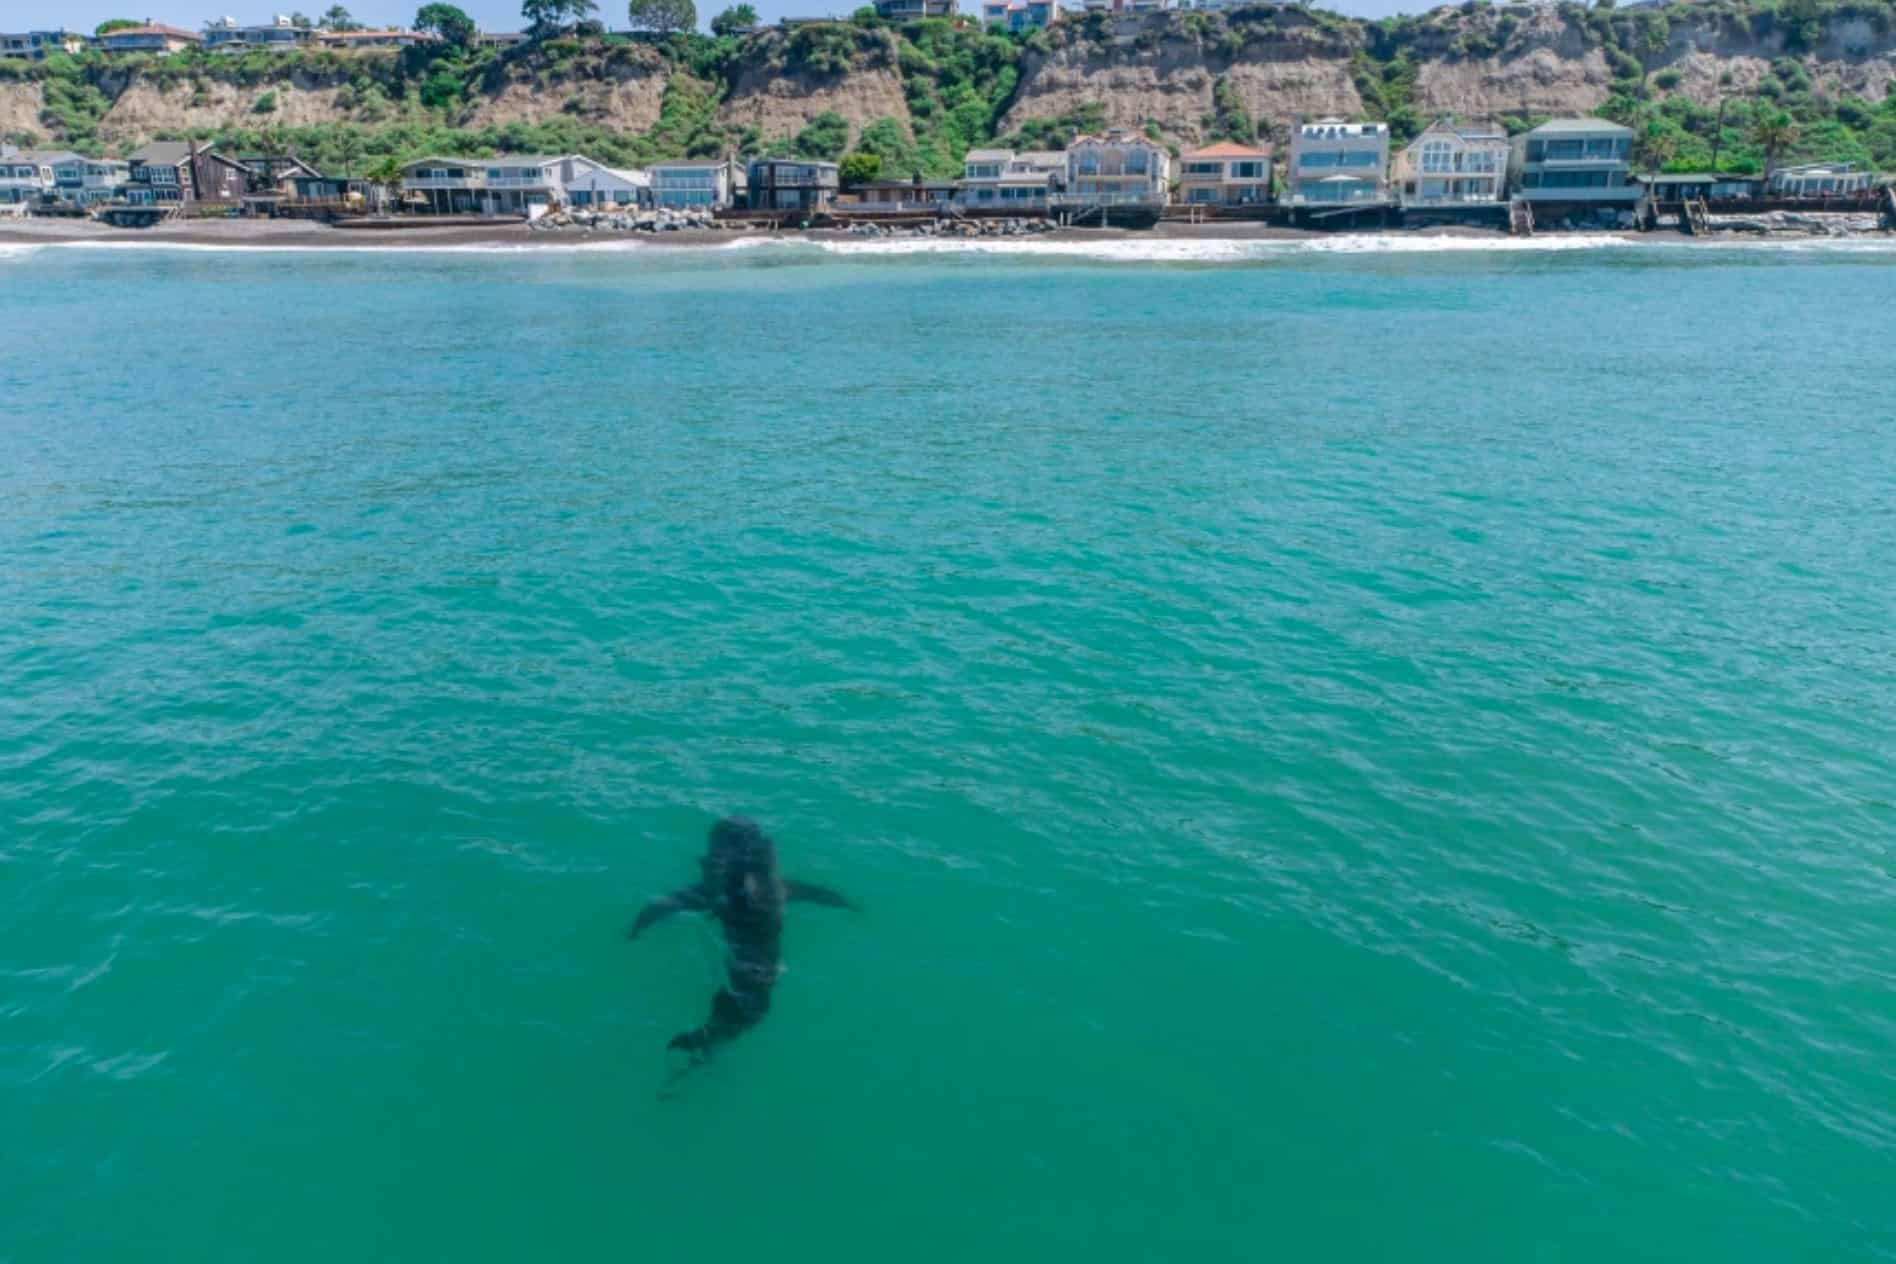 Drone in hot pursuit of great white shark at Dana Point